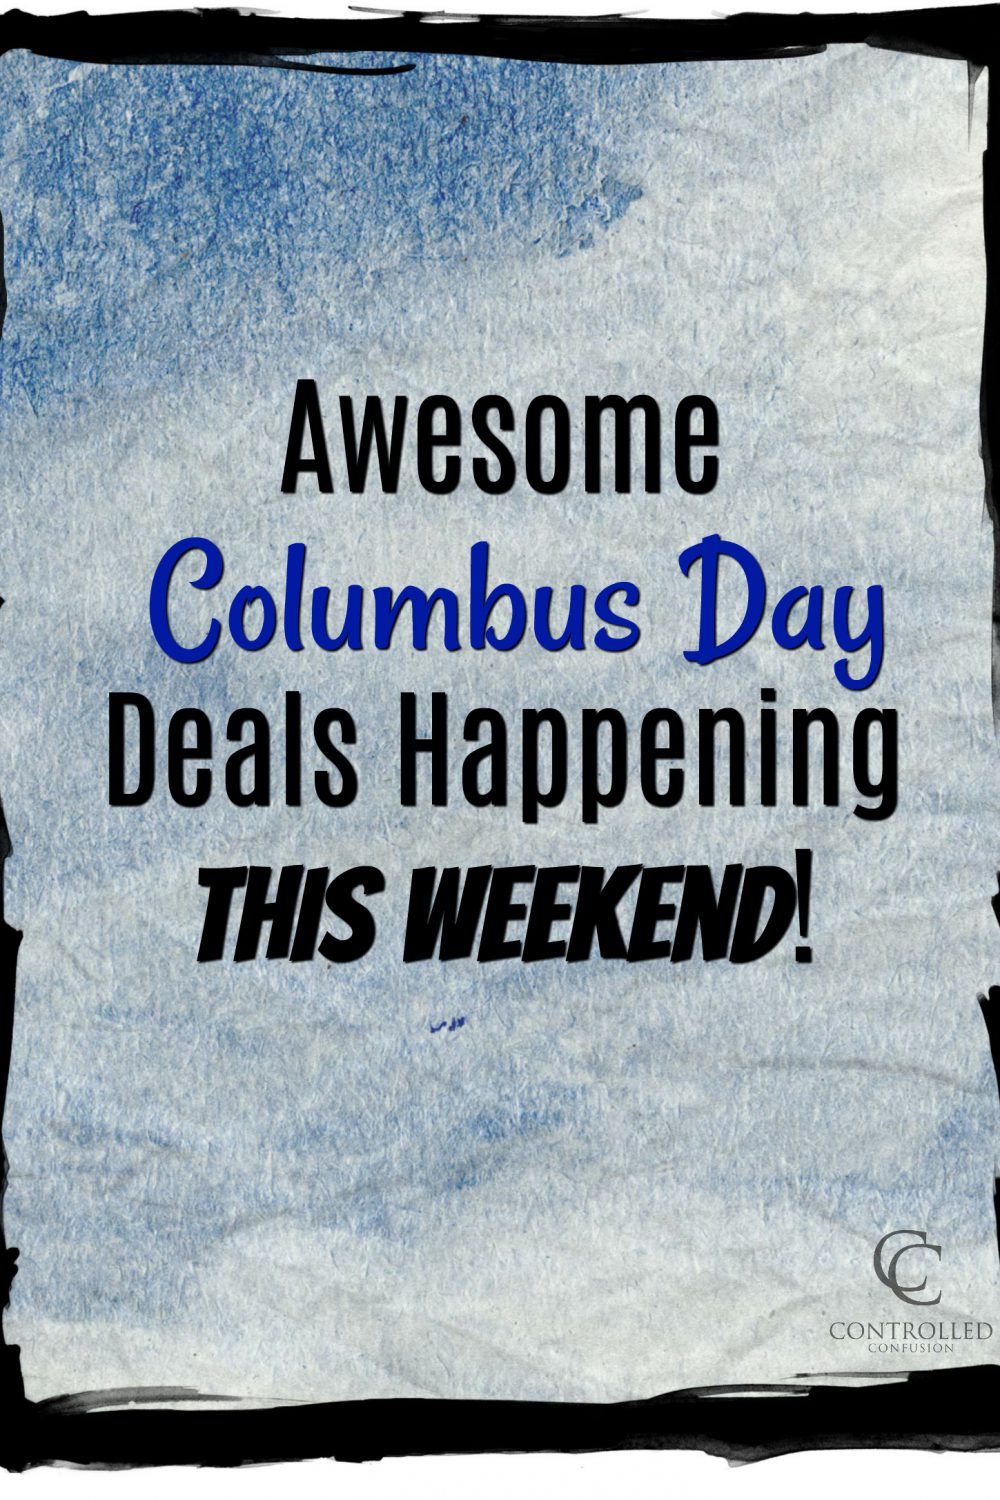 Awesome Columbus Day Deals Happening This Weekend!